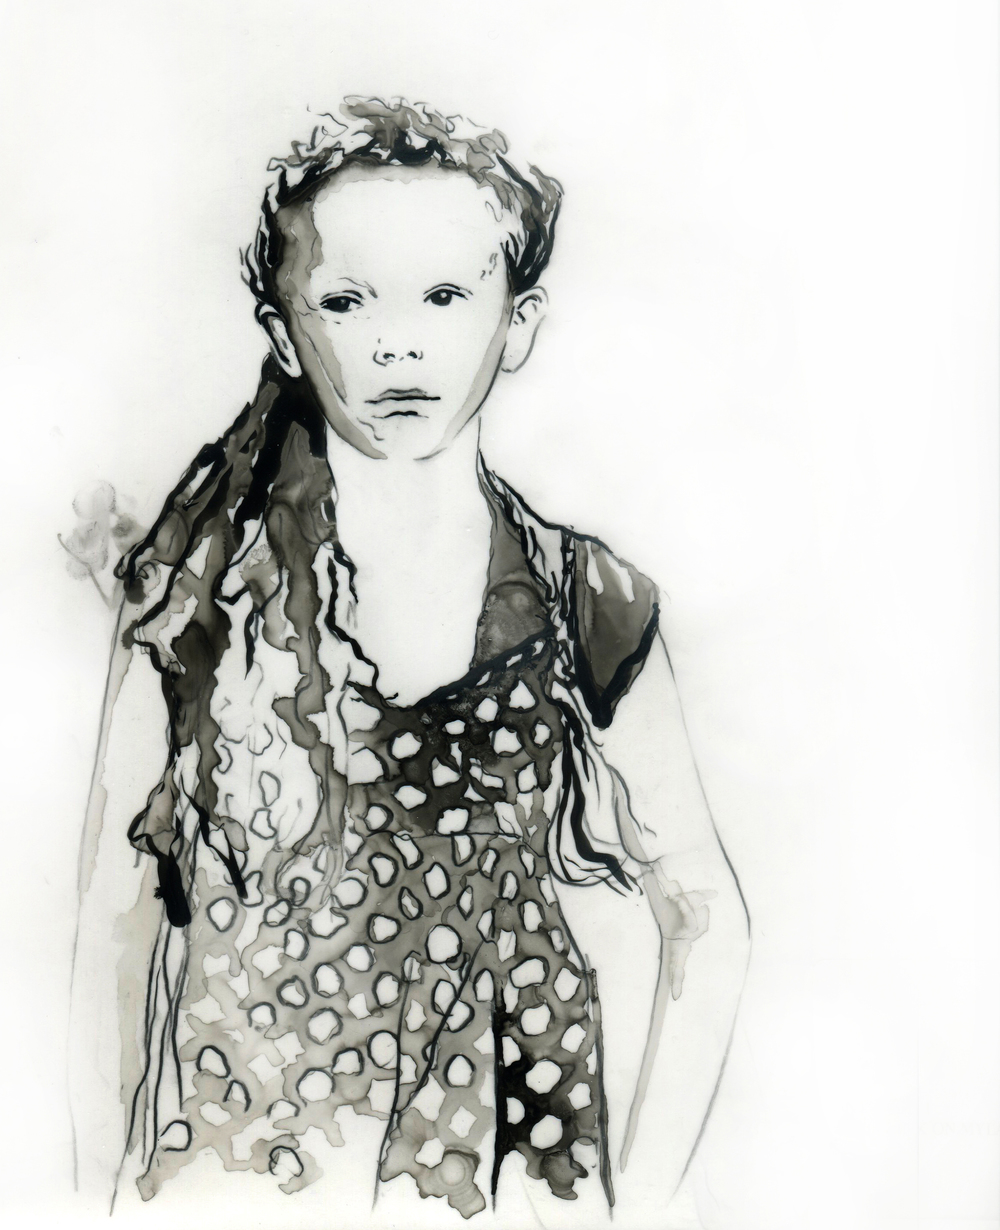 INK DRAWING 1.jpg